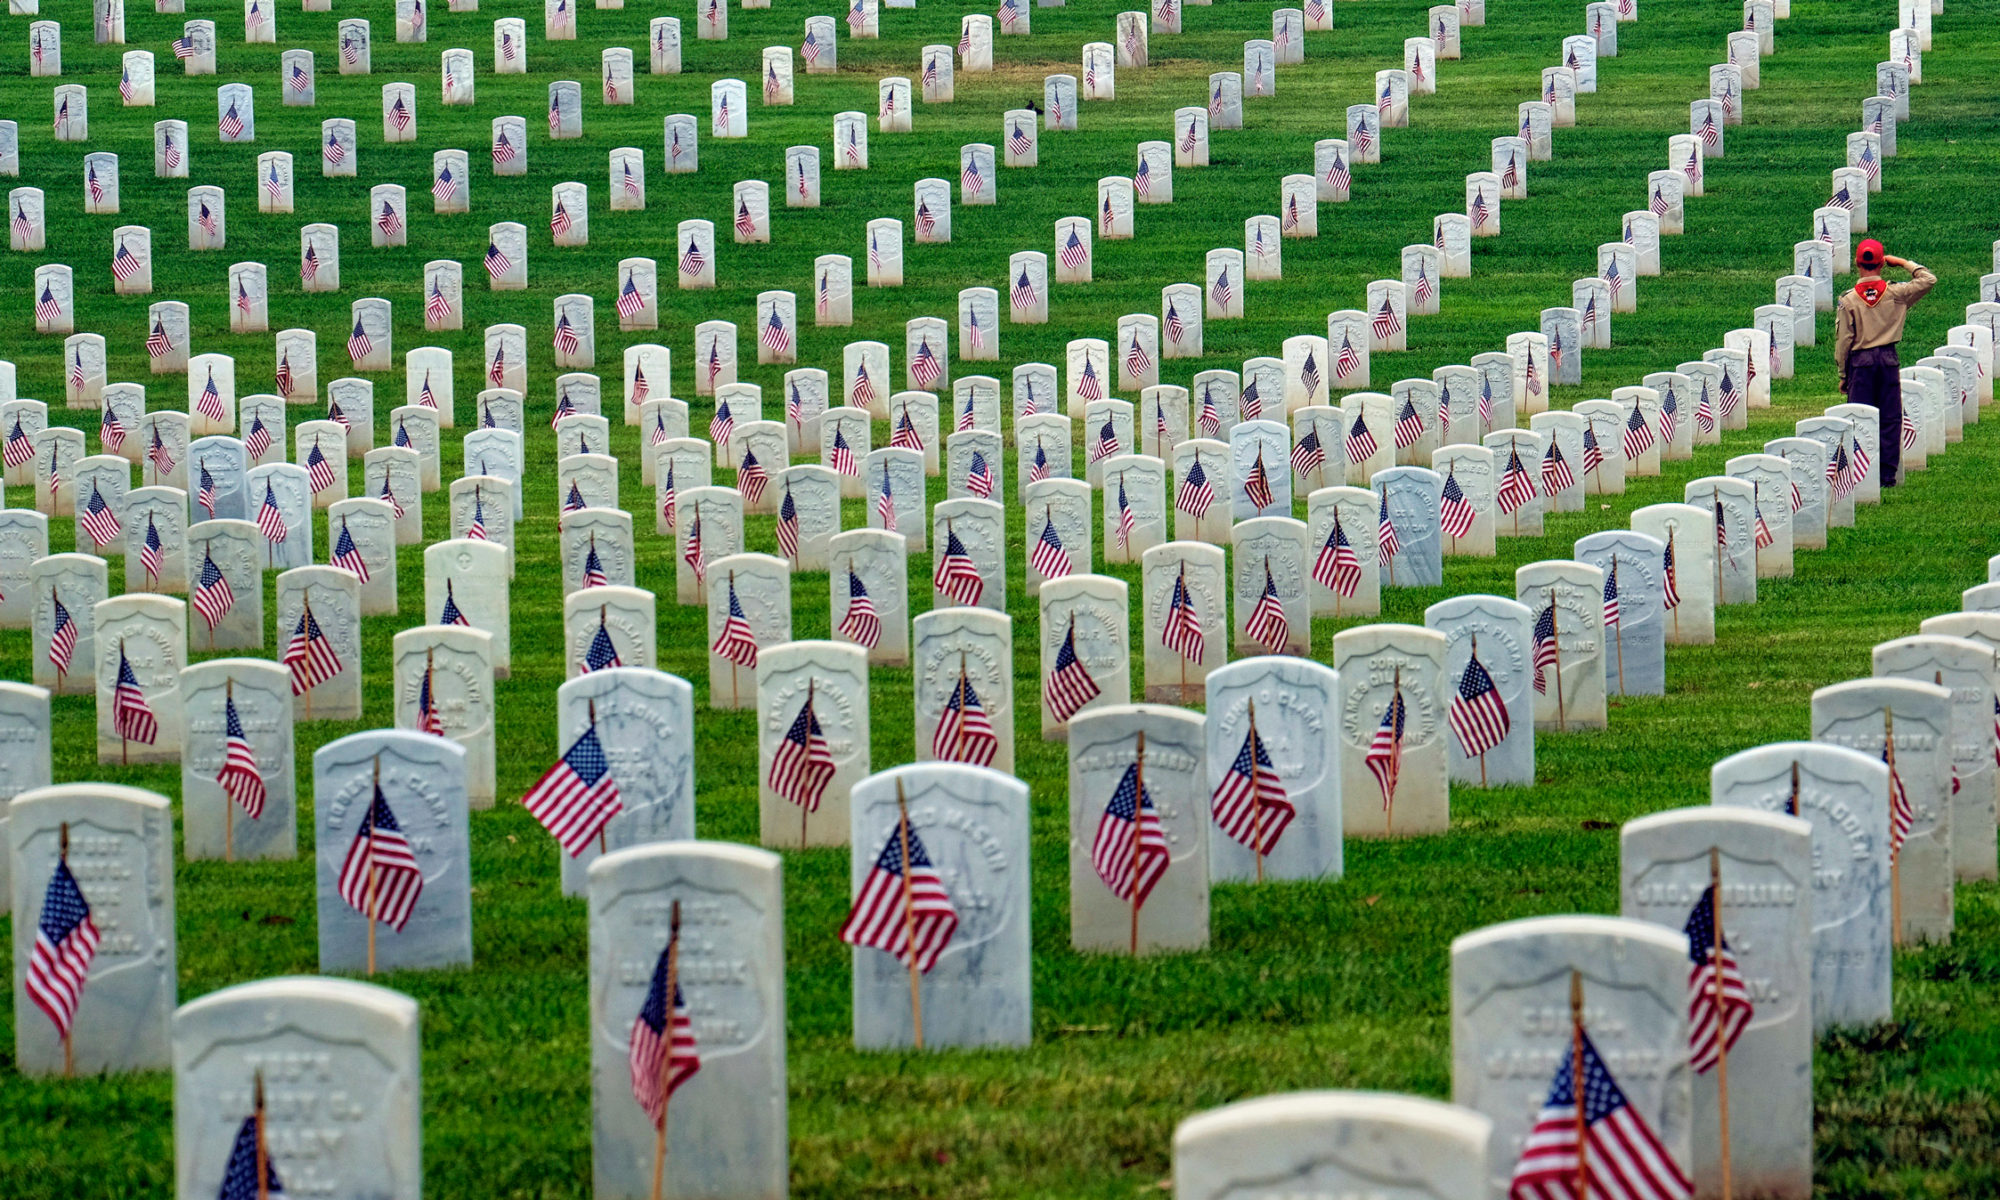 Reflections on Memorial Day: those who serve & sacrifice, those who work for peace